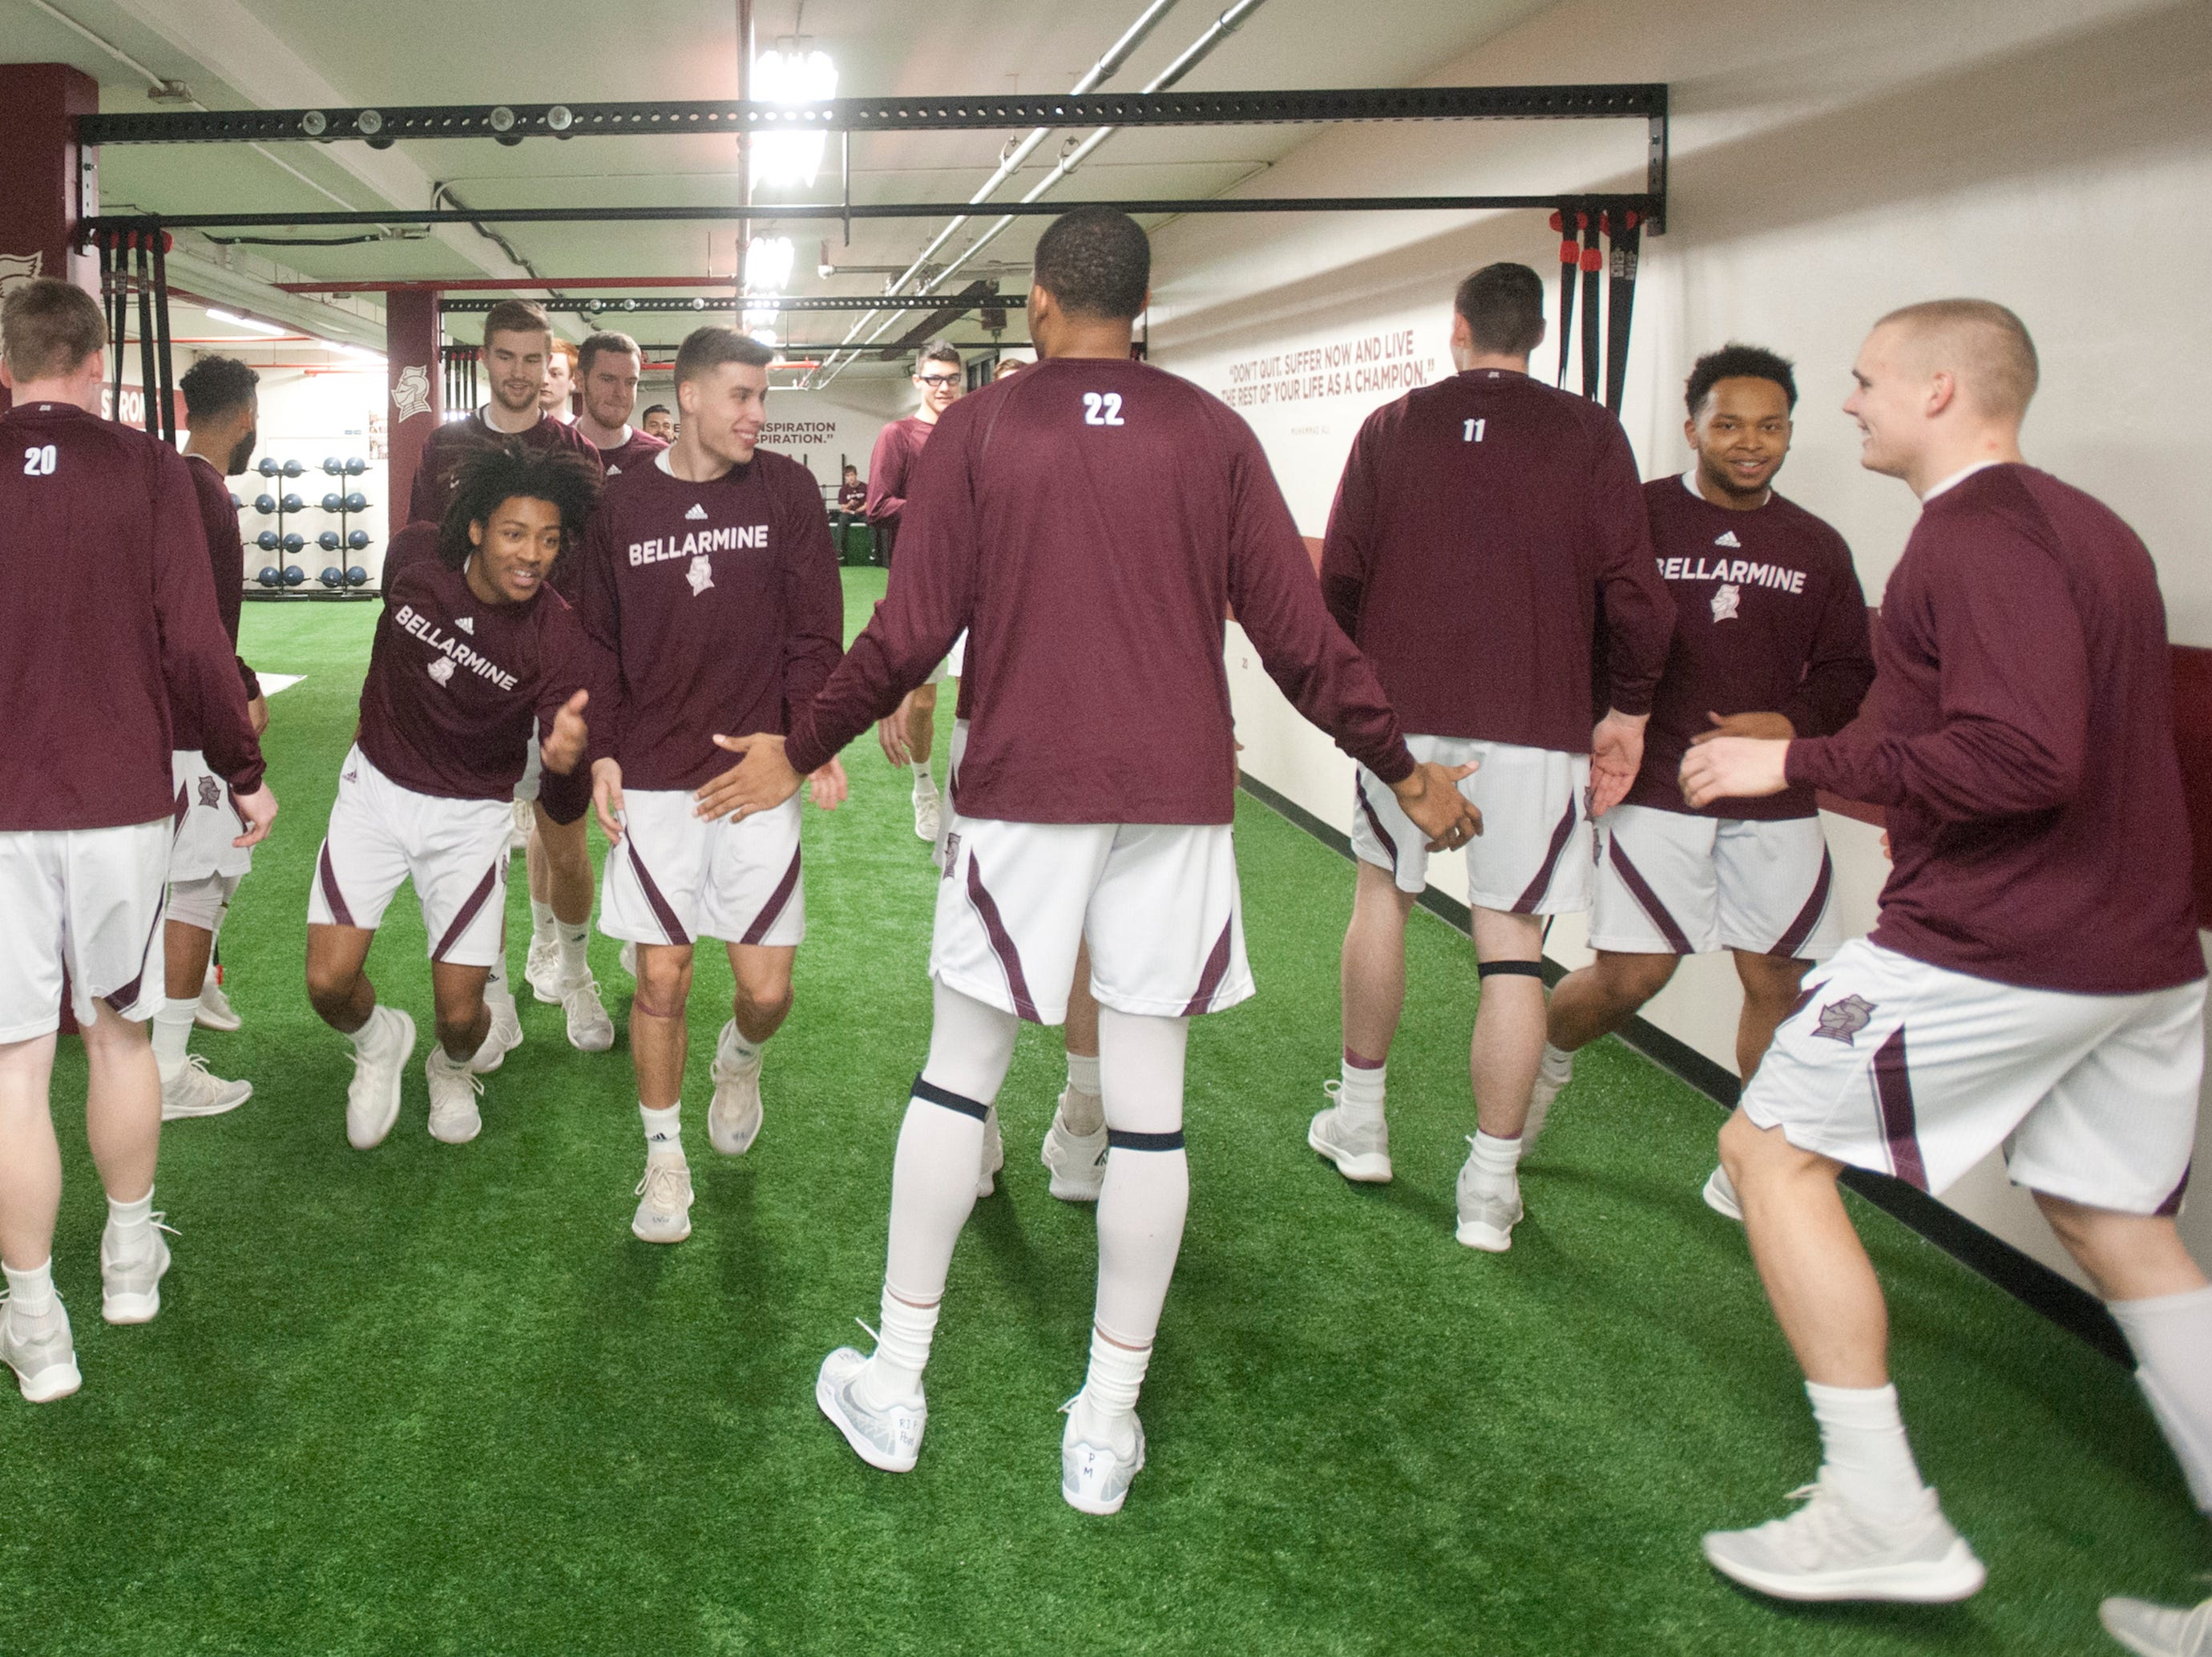 As Bellarmine player exercise their way up and down the training room, they slap each other's hands for each successful trip.18 December 2018